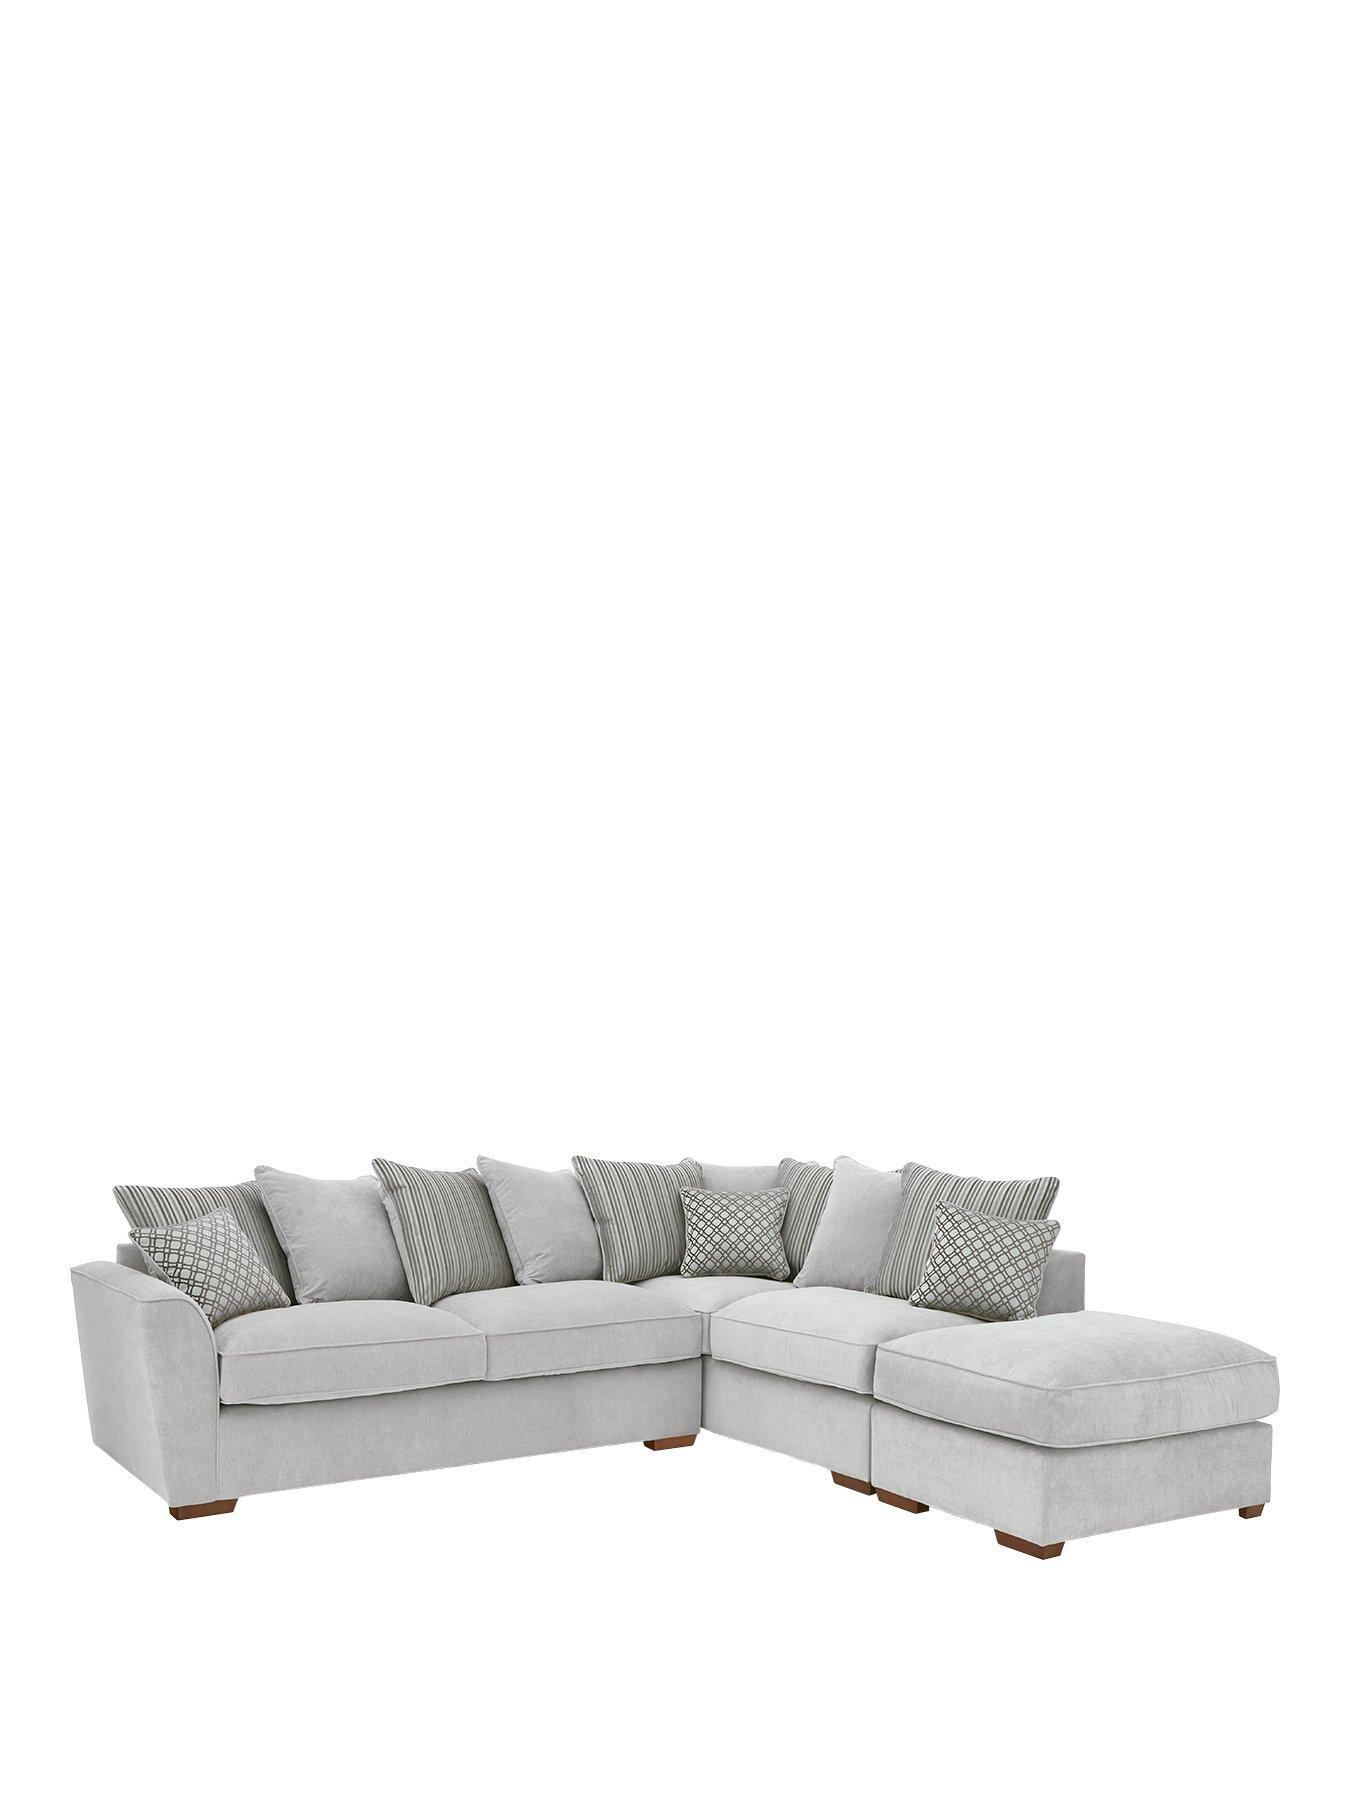 modena righthand fabric corner chaise sofa bed